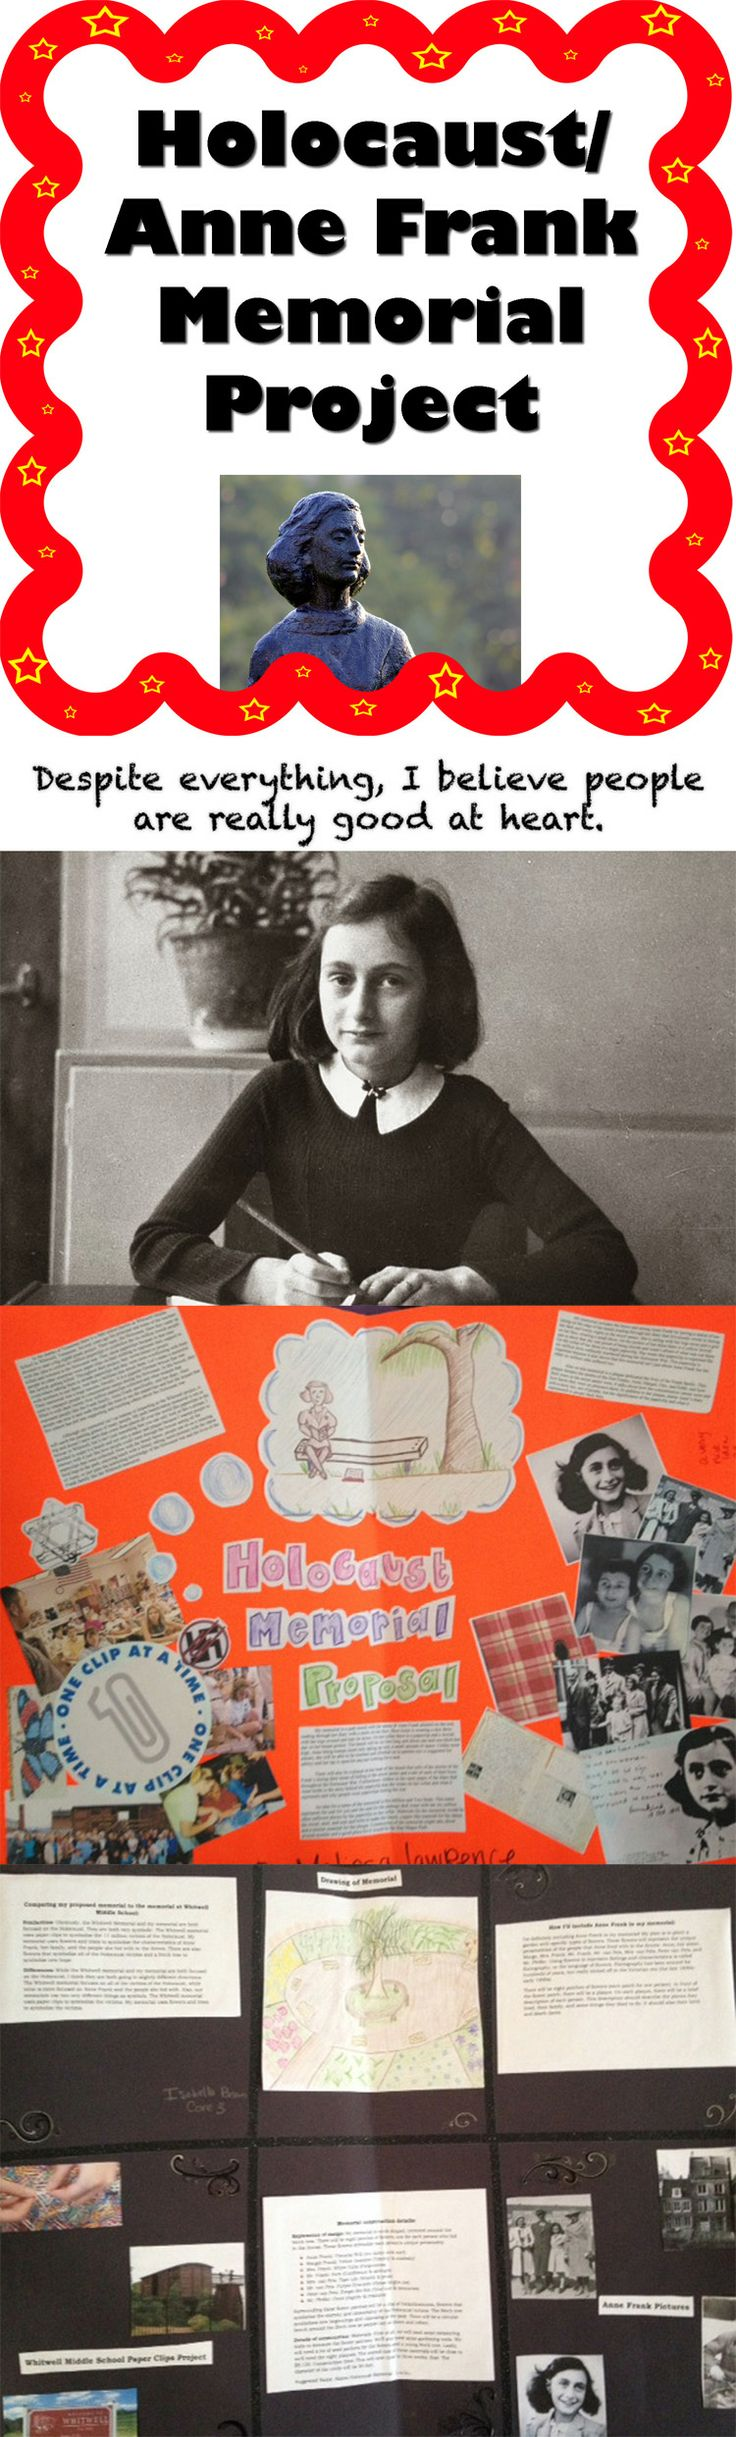 17 best images about anne frank anne frank museums holocaust diary of anne frank memorial project